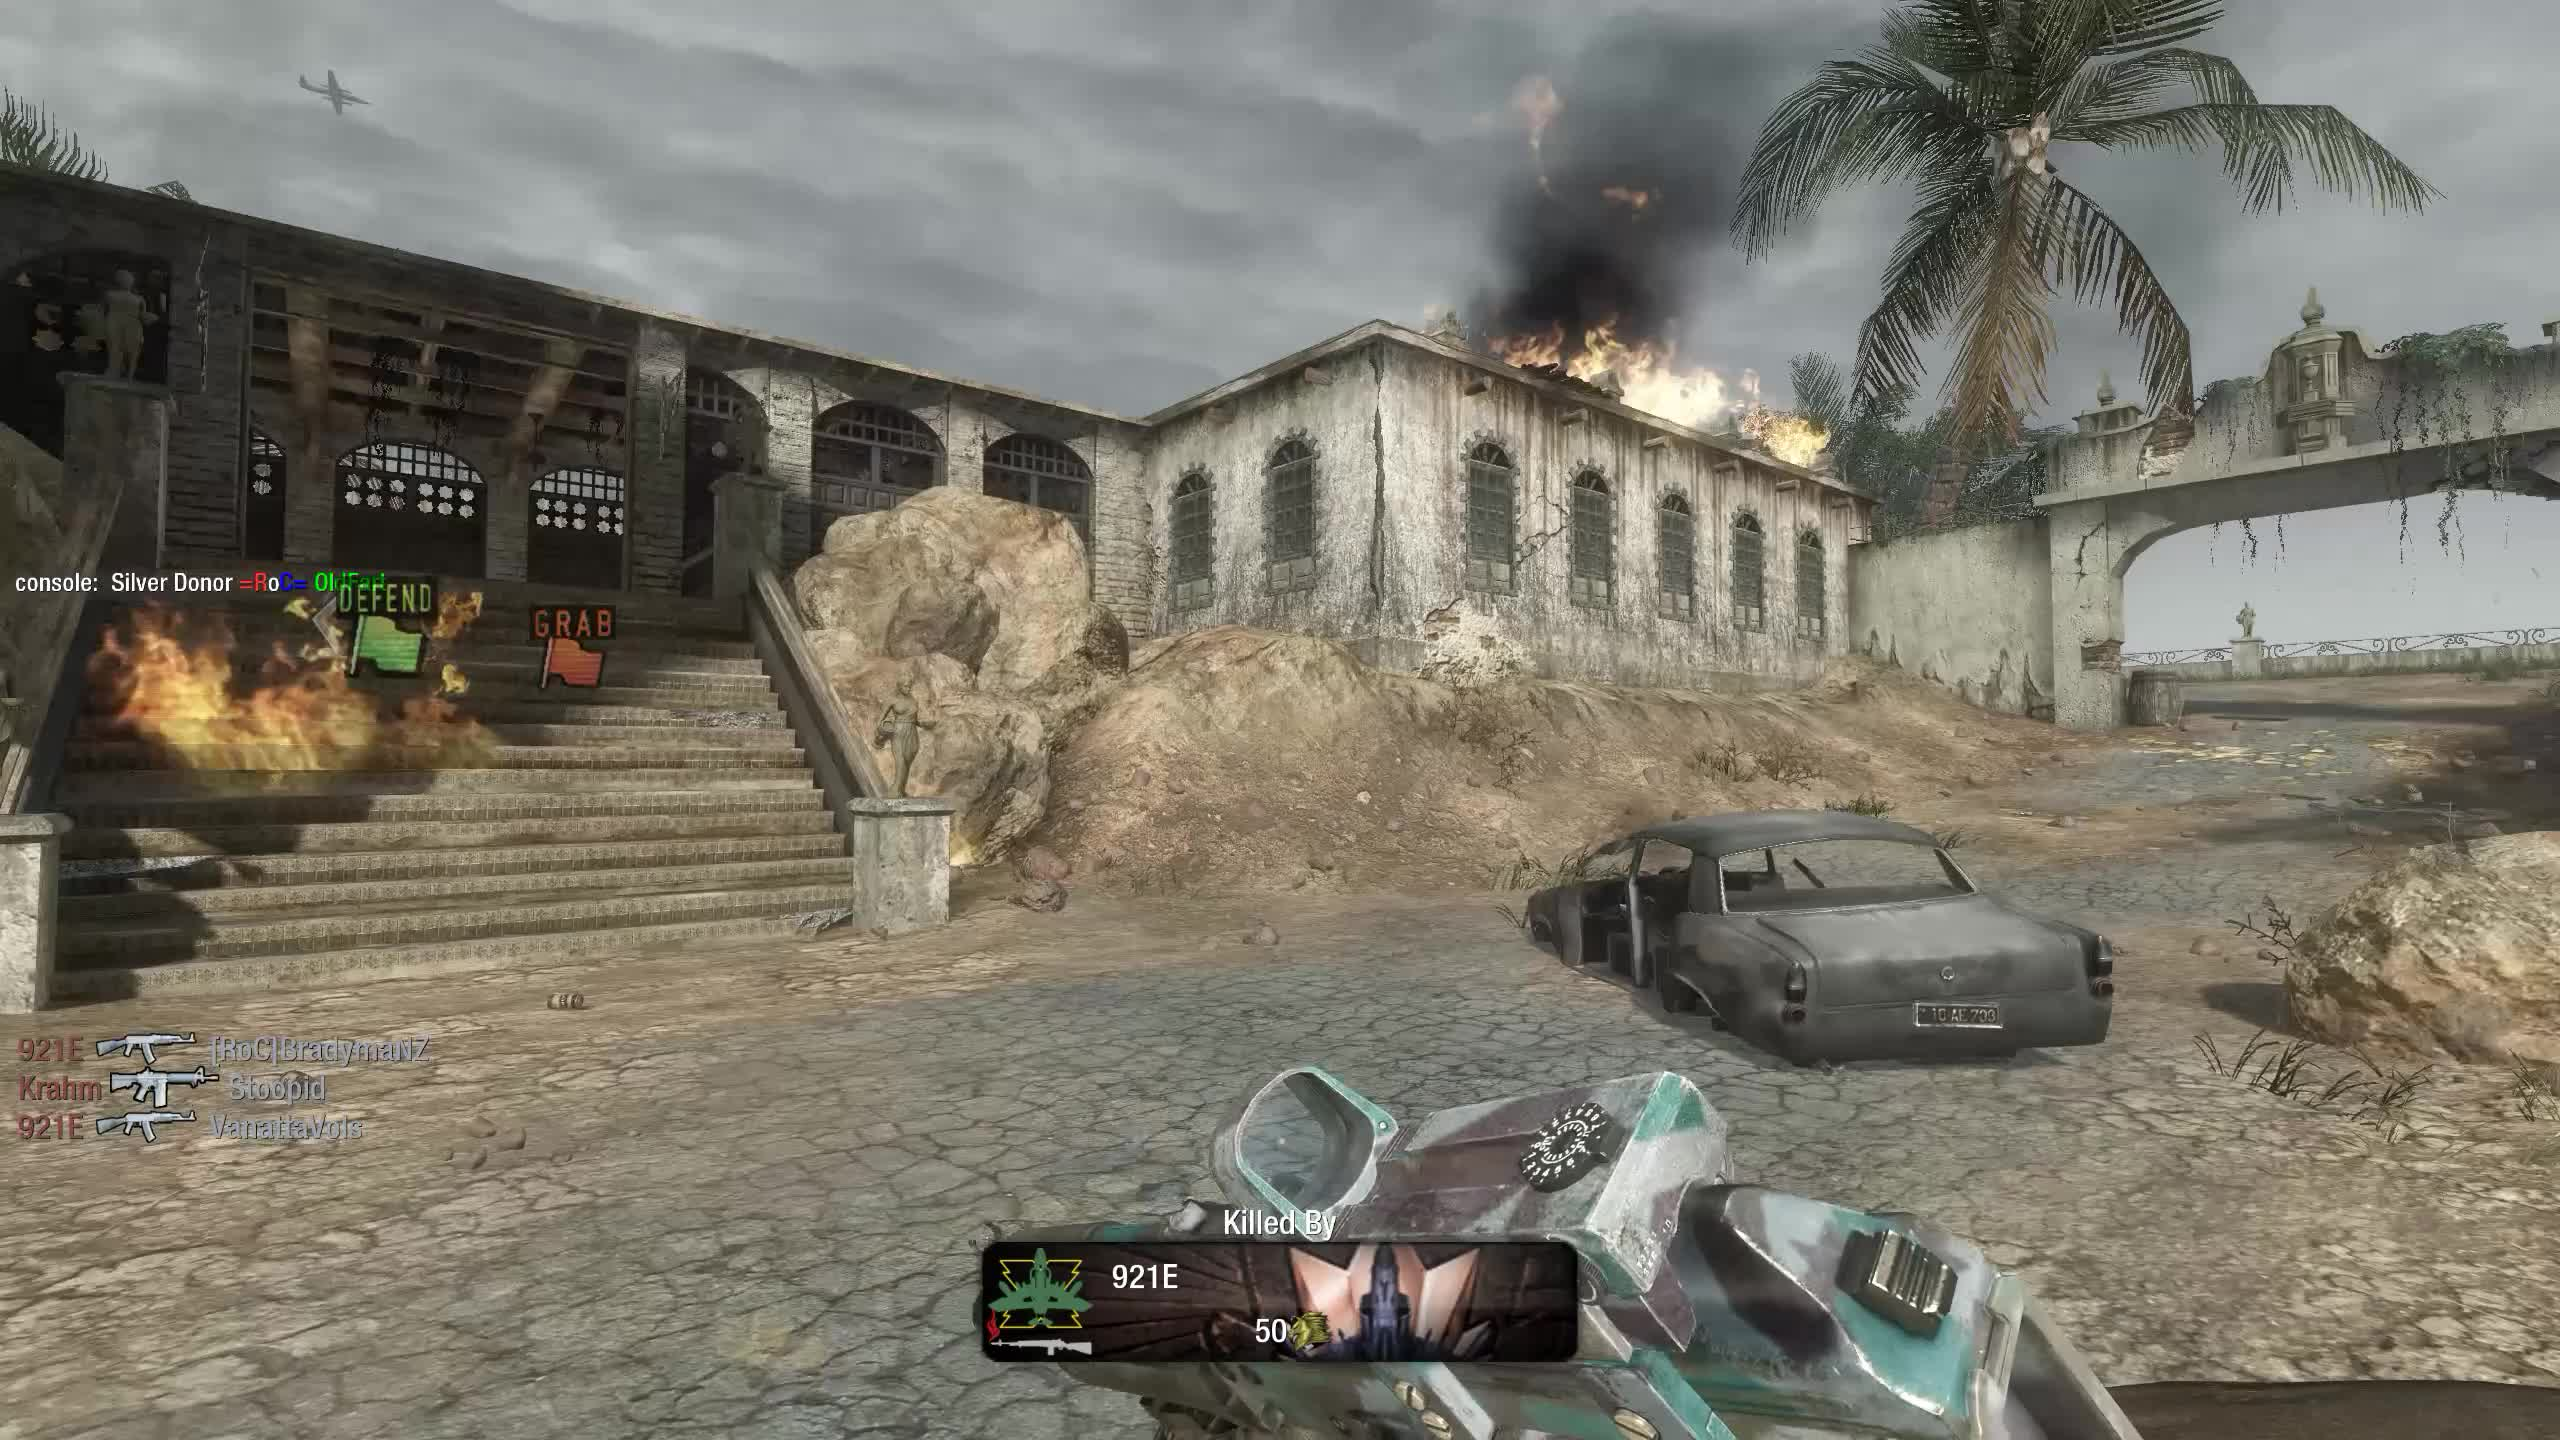 1, Black Ops, COD BLOPS, Call of Duty, napalm, Flame Retard(ant) GIFs